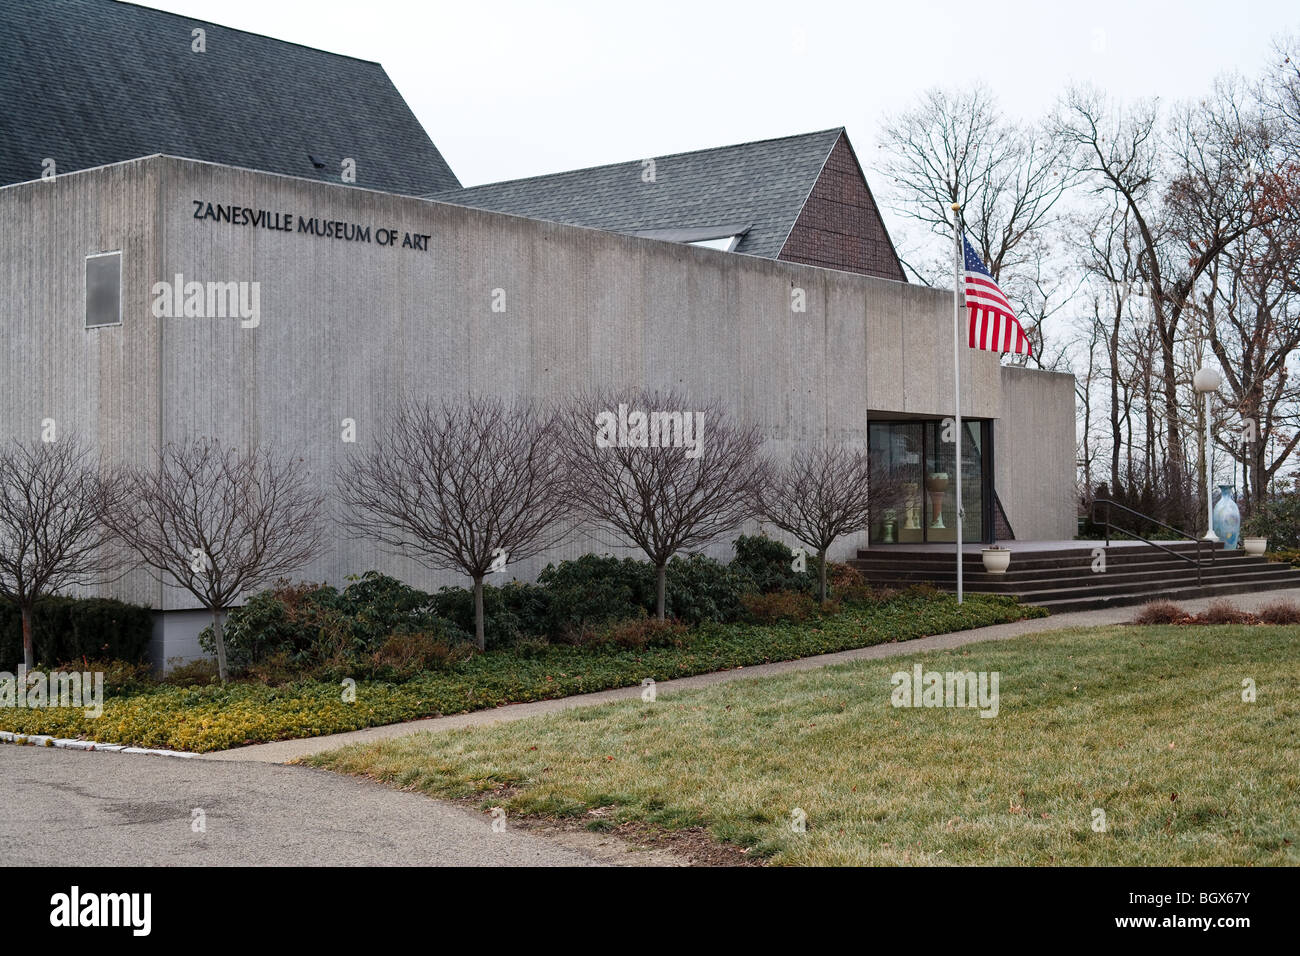 Zanesville Museum Of Art Stock Photo 27620543 Alamy